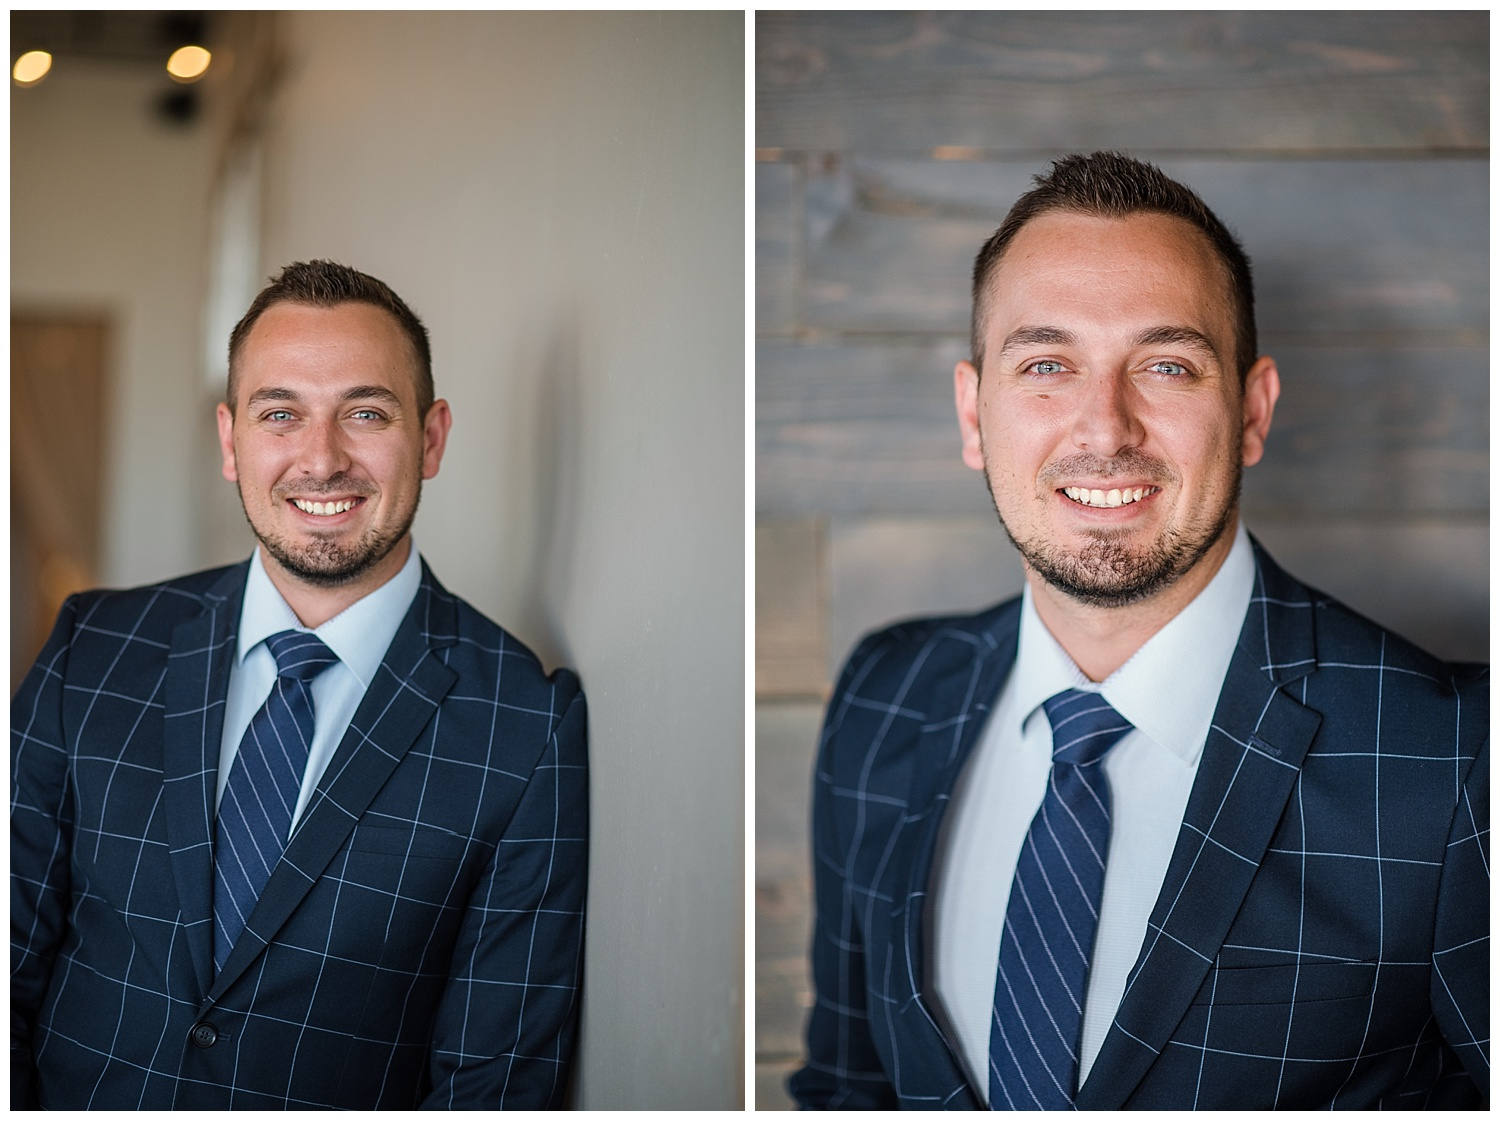 Denver Business Photographer, Denver Headshot Photographer, Colorado Headshot Photographer, Colorado Corporate Photographer, Denver Entrepreneur Photographer, Photos Moss Denver